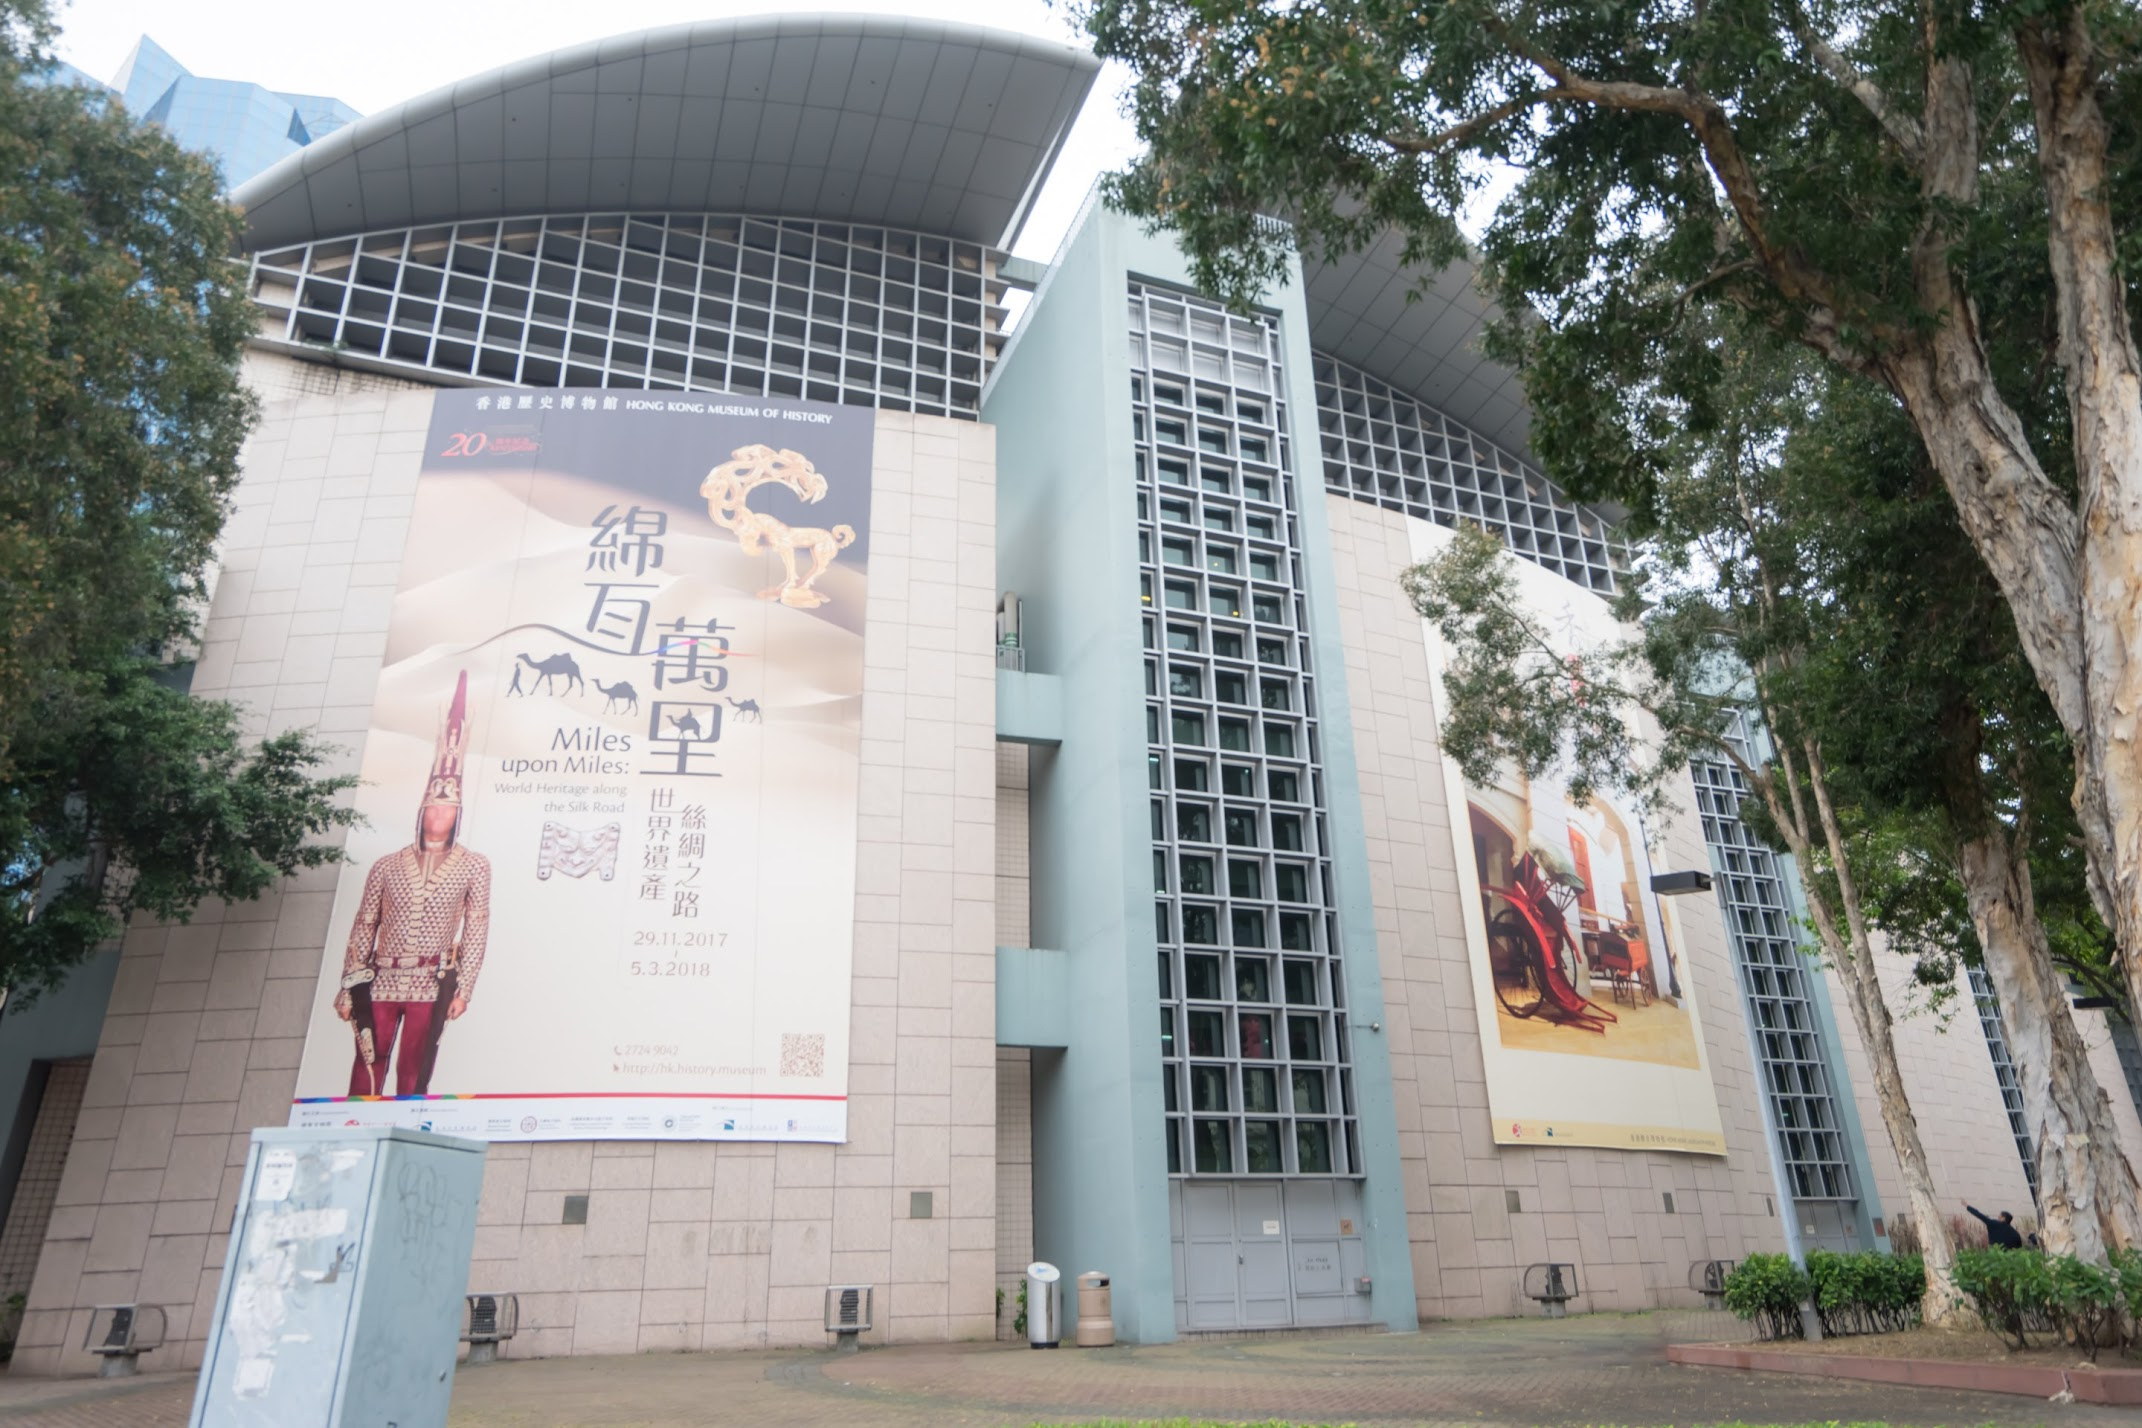 hong kong history A guide to visiting hong kong's museum of history with a toddler in tow, including information about nearby playgrounds and child-friendly restaurants.